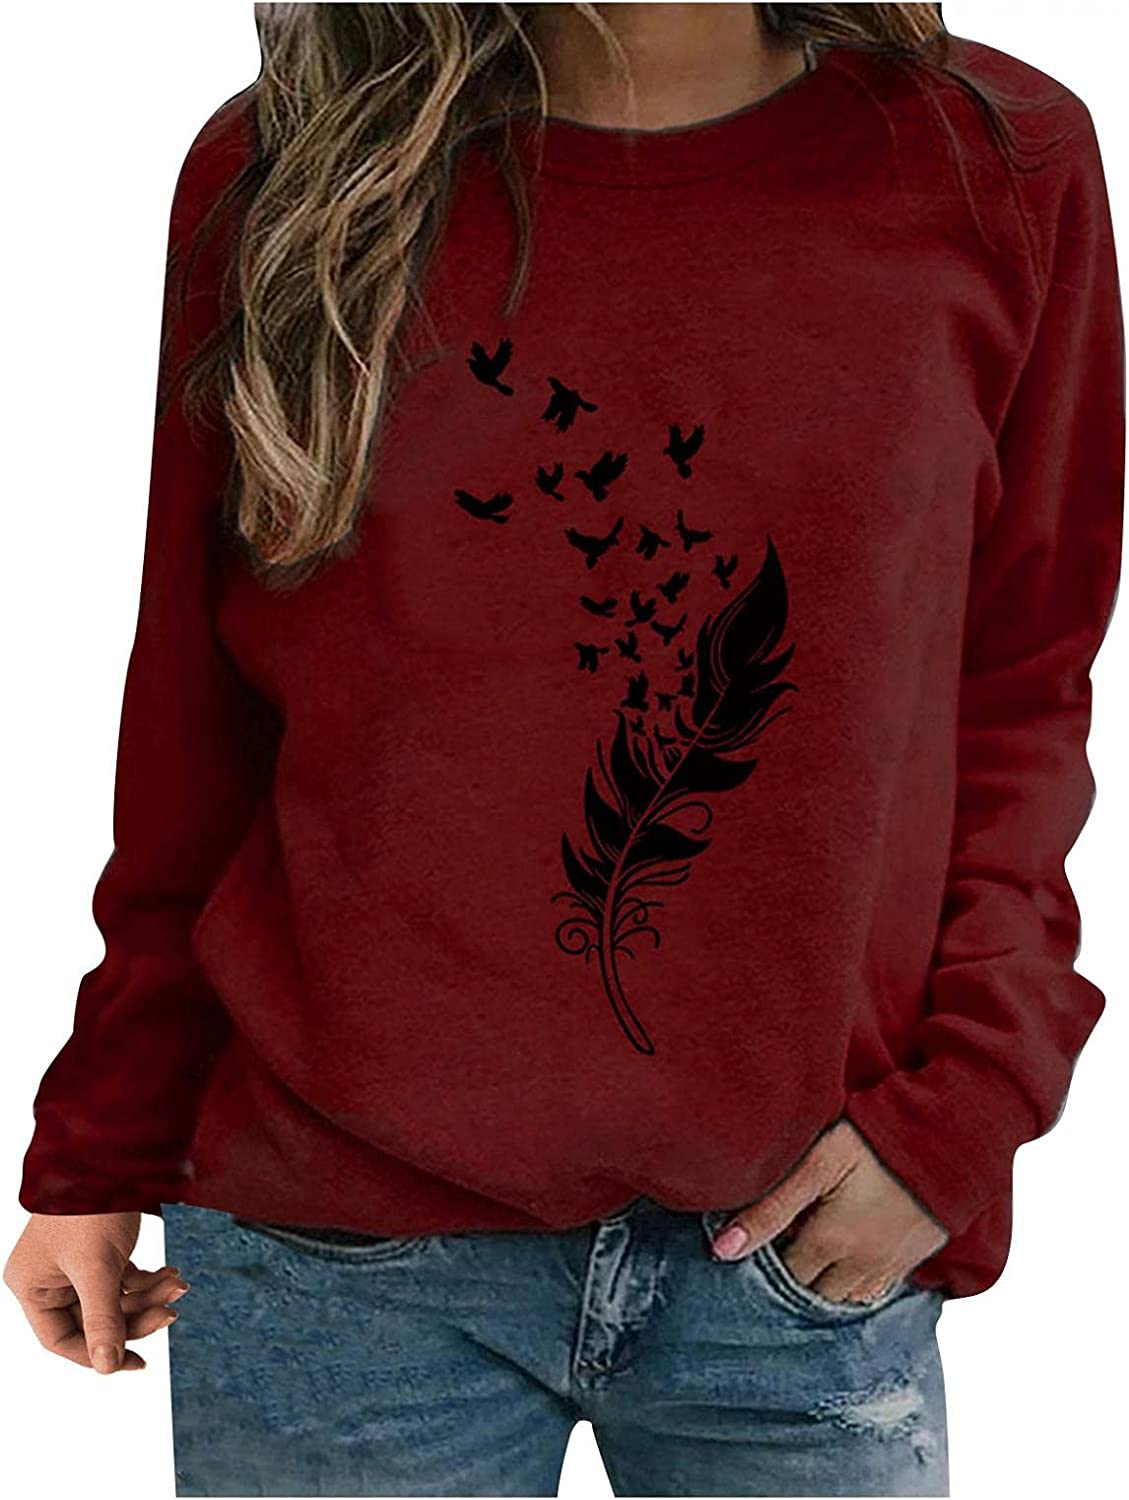 HCNTES Graphic Sweatshirts for Women,Women's Feather Graphic Sweatshirts Casual Pullover Hoodies Long Sleeve Shirts